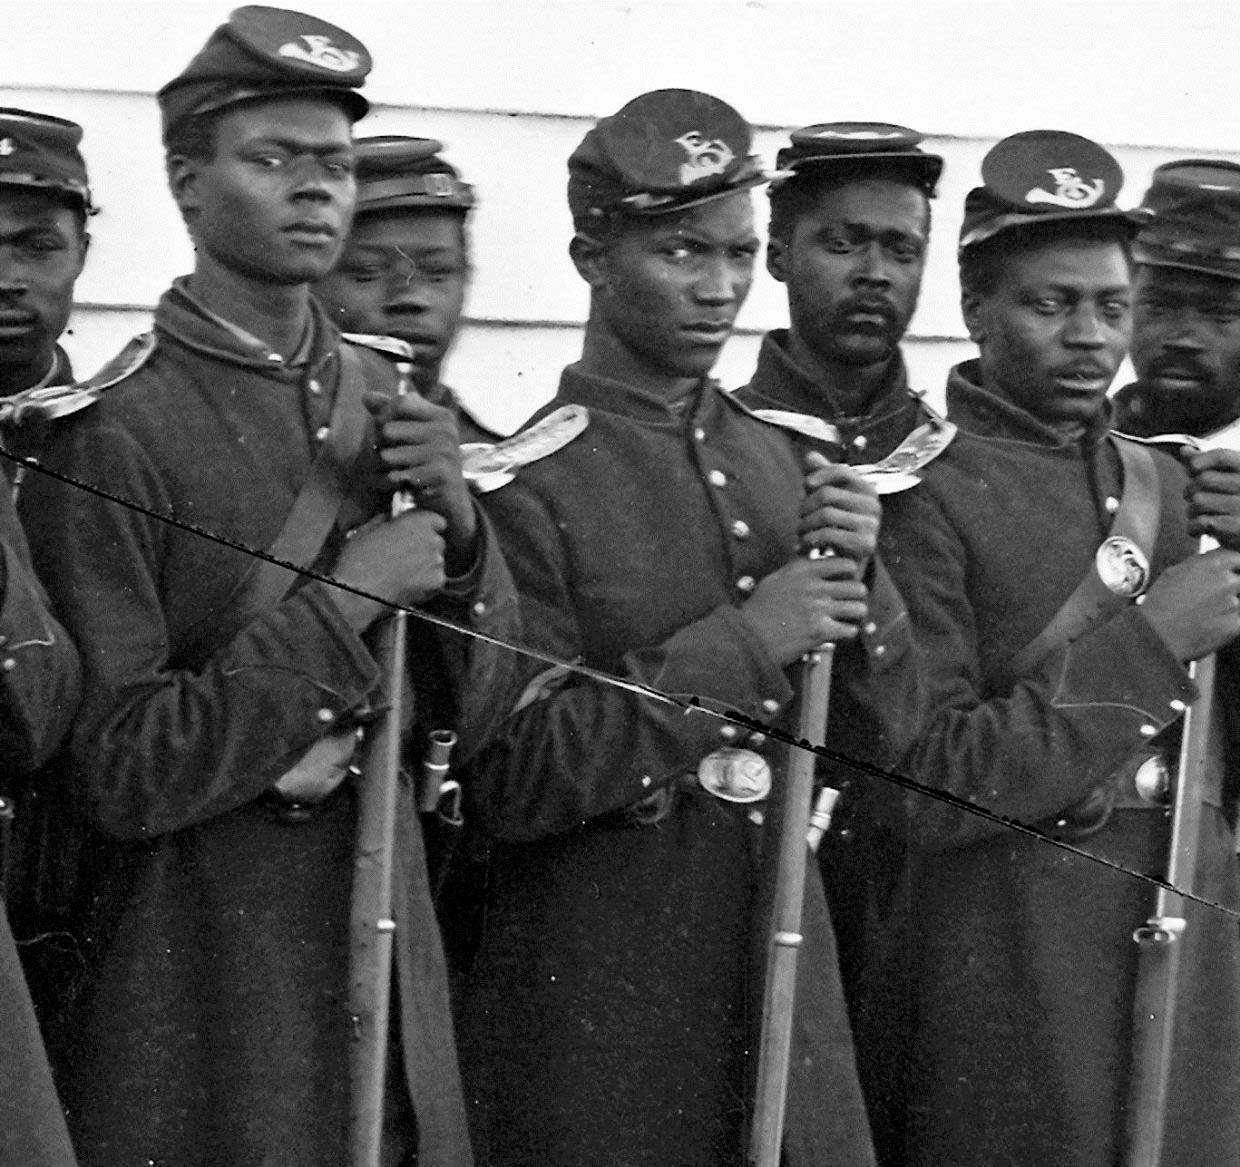 Company E, 4th U.S. Colored Infantry, Fort Lincoln, ca. 1864